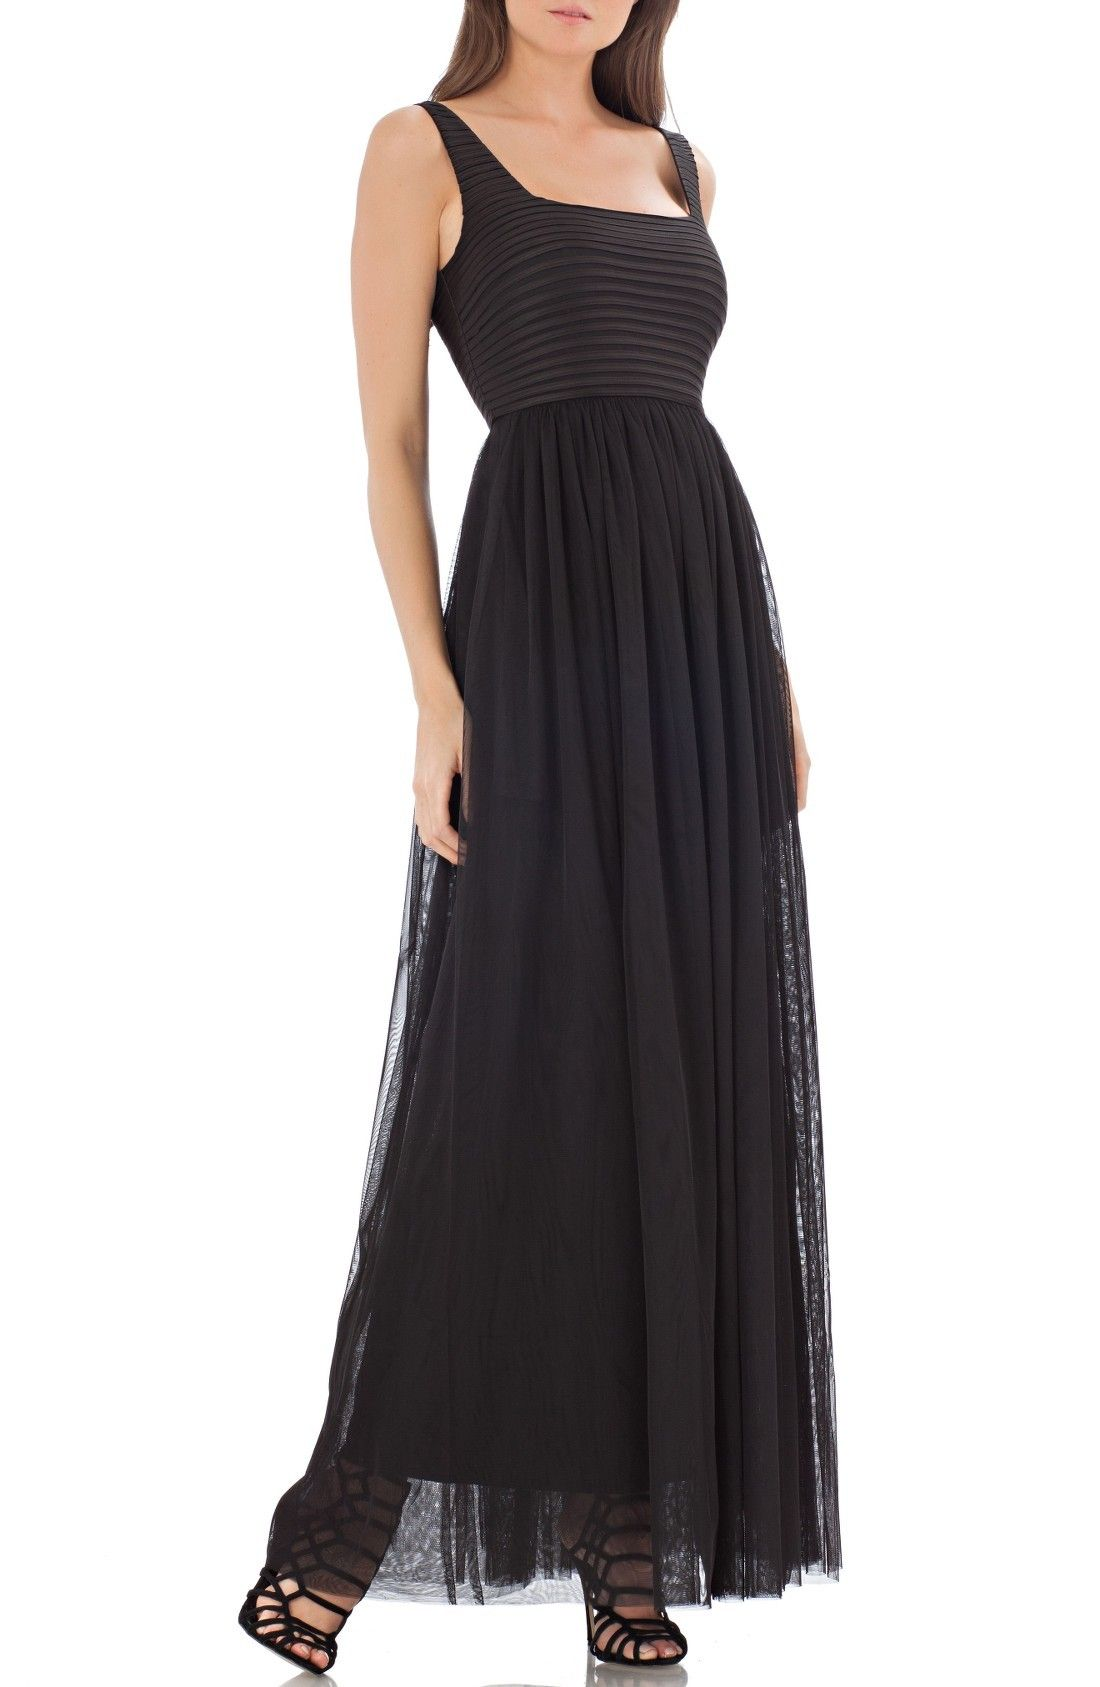 Js collections beaded one shoulder cocktail dress house of fraser